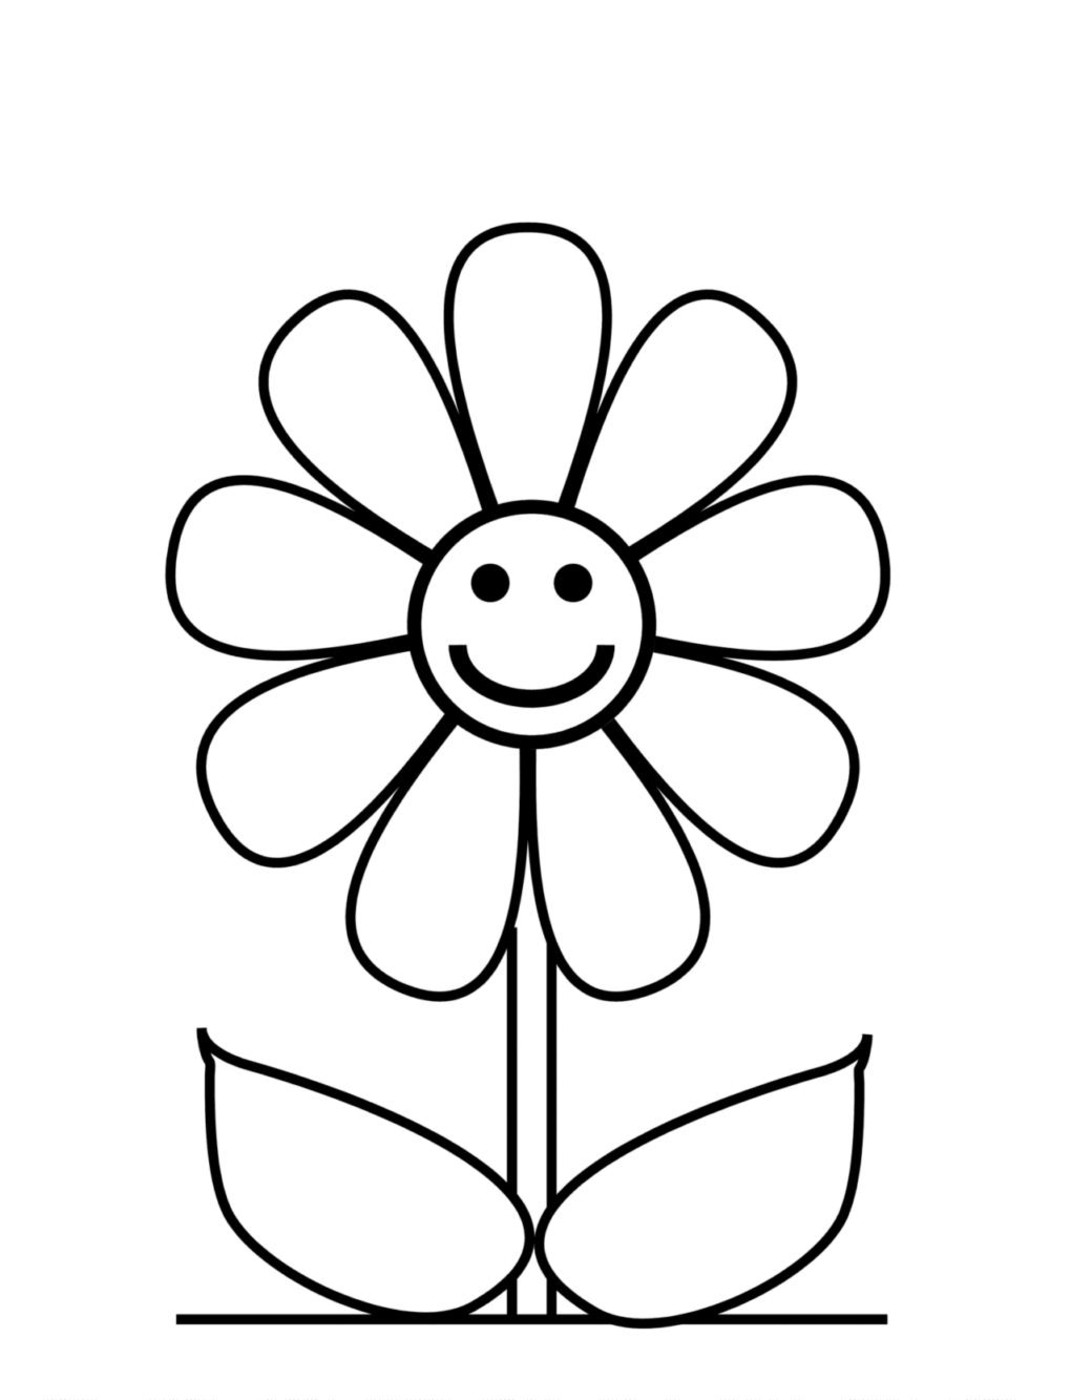 cute flower coloring pictures cute flower coloring page wecoloringpagecom flower cute coloring pictures